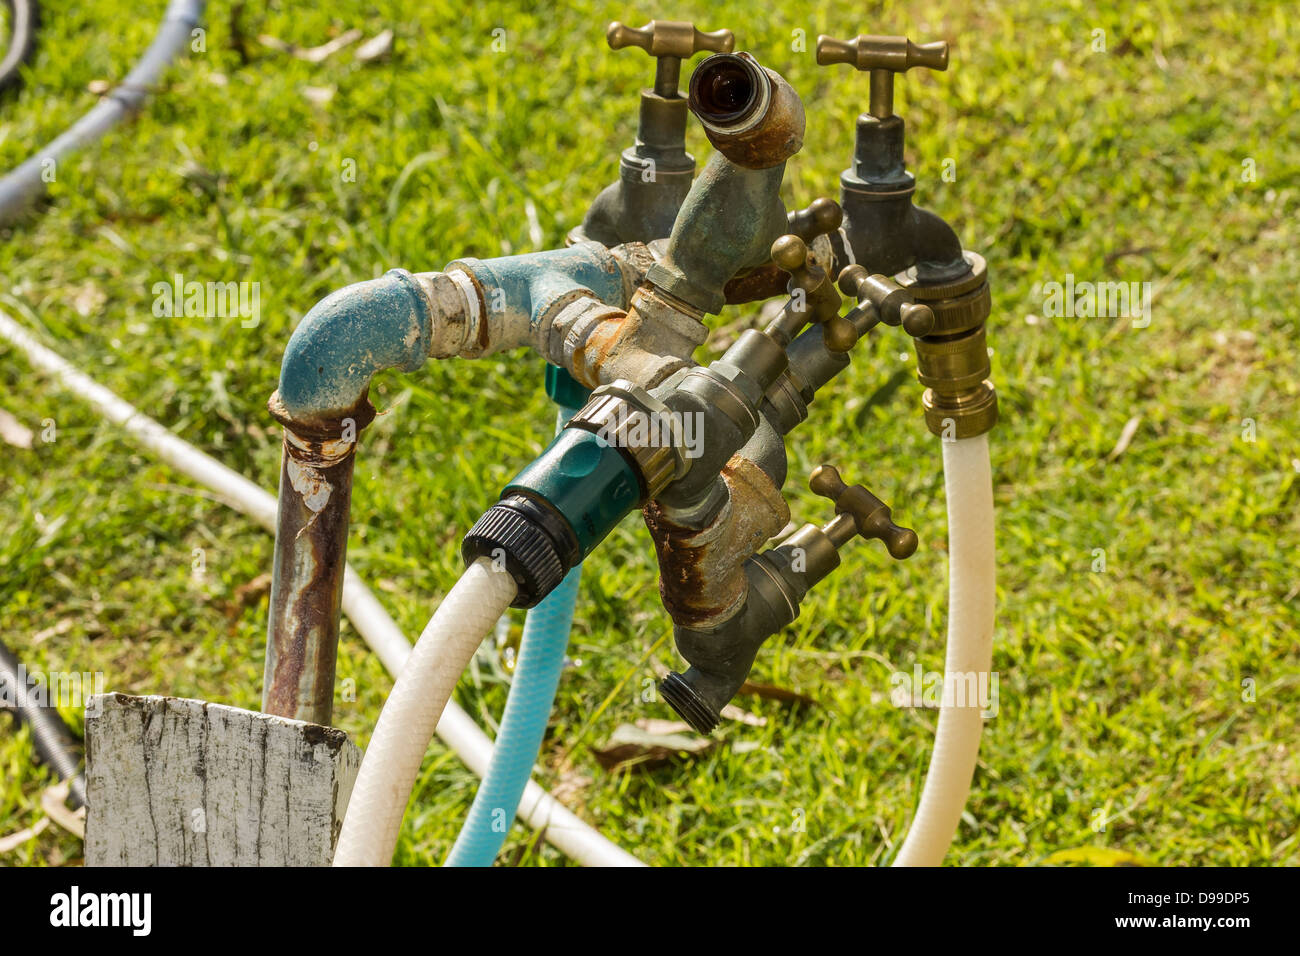 Water tap tree. - Stock Image